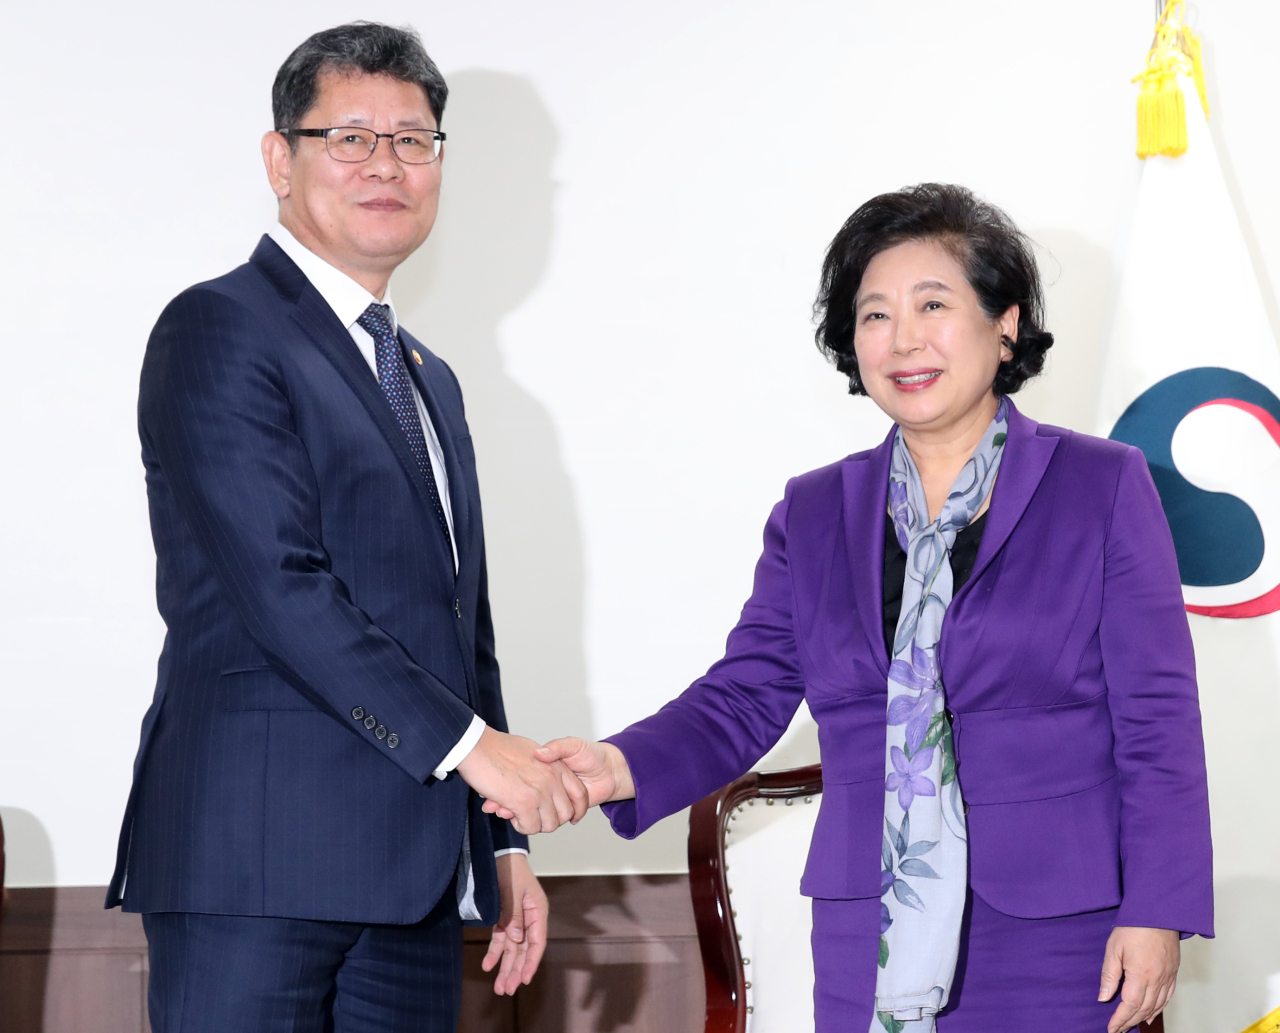 South Korean Unification Minister Kim Yeon-chul (left) shakes hands with Hyundai Group Chairwoman Hyun Jeong-eun at the ministry in Seoul, Thursday. (Yonhap)